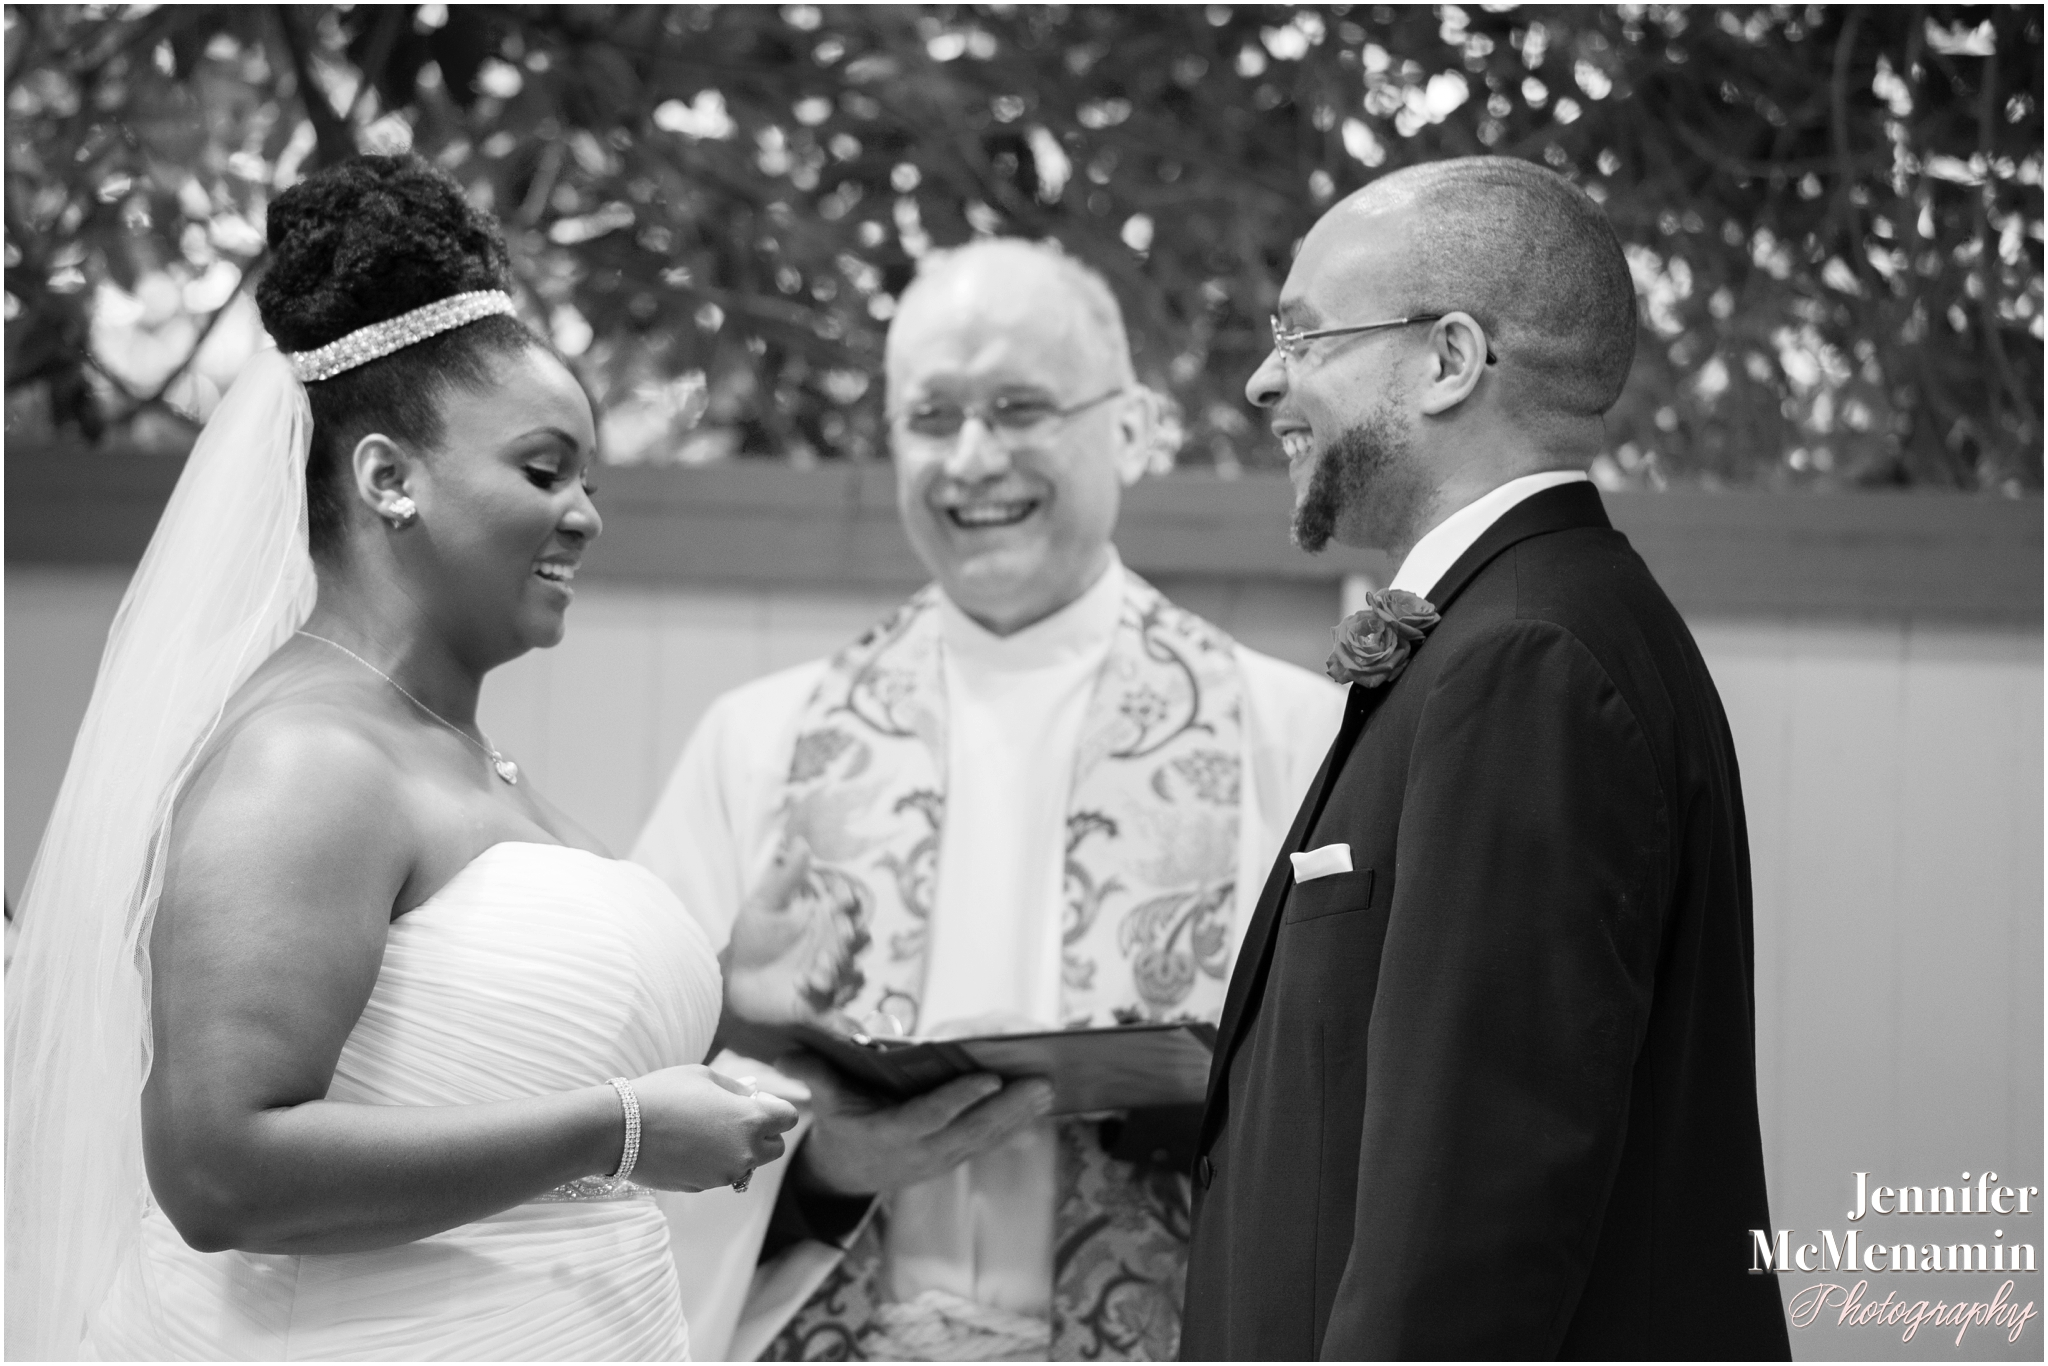 015_JarmonTurner_00469bw-0110_JenniferMcMenaminPhotography_Chase-Court_Gertrudes-at-the-Baltimore-Museum-Of-Art_Gertrudes-at-the-BMA_Baltimore-wedding-photography_Baltimore-wedding-photographer